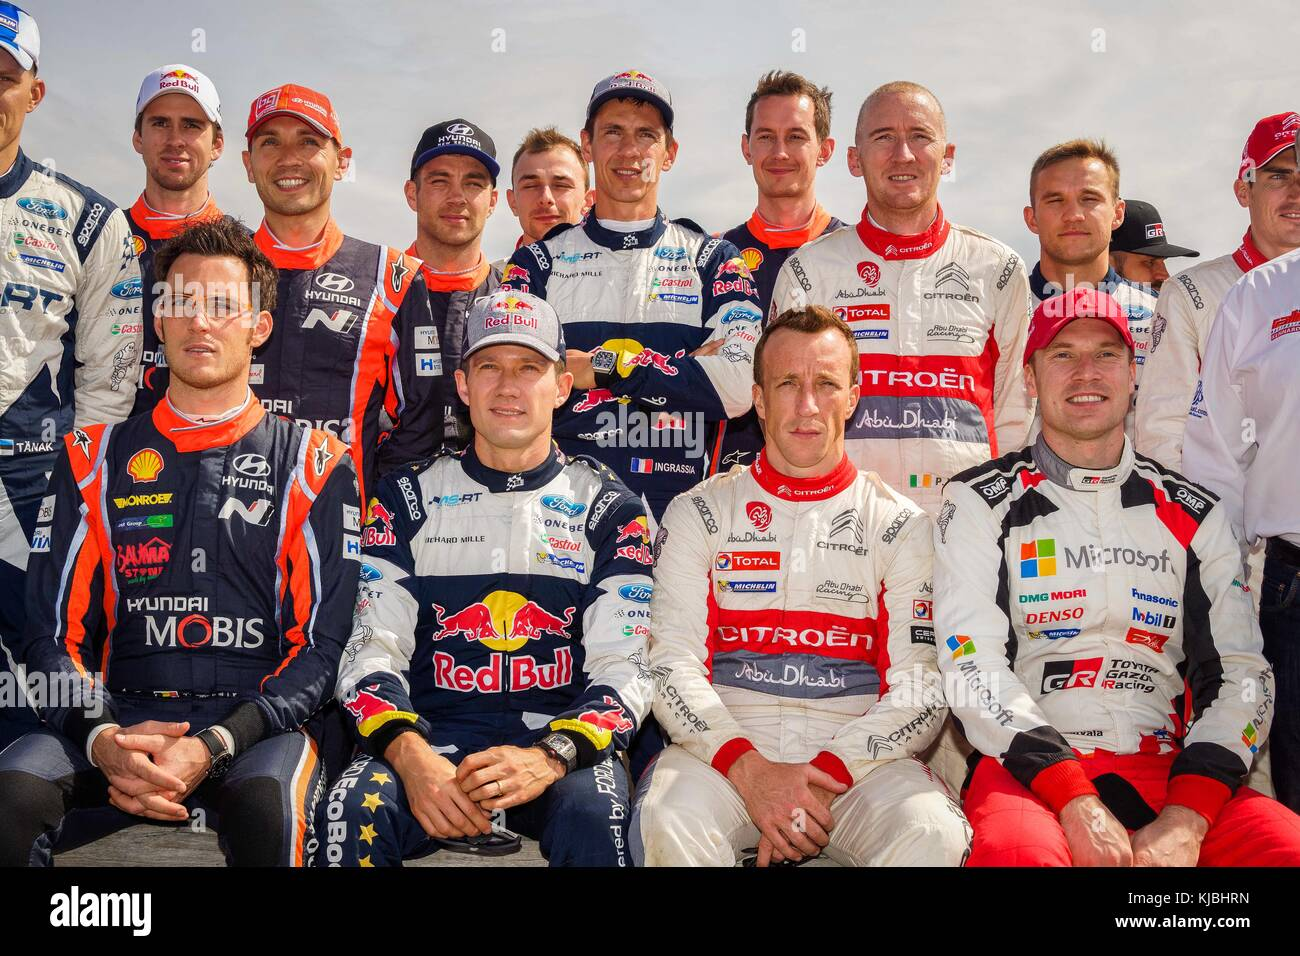 FIA WRC Rally drivers pictured at the photo opportunity prior to the ...